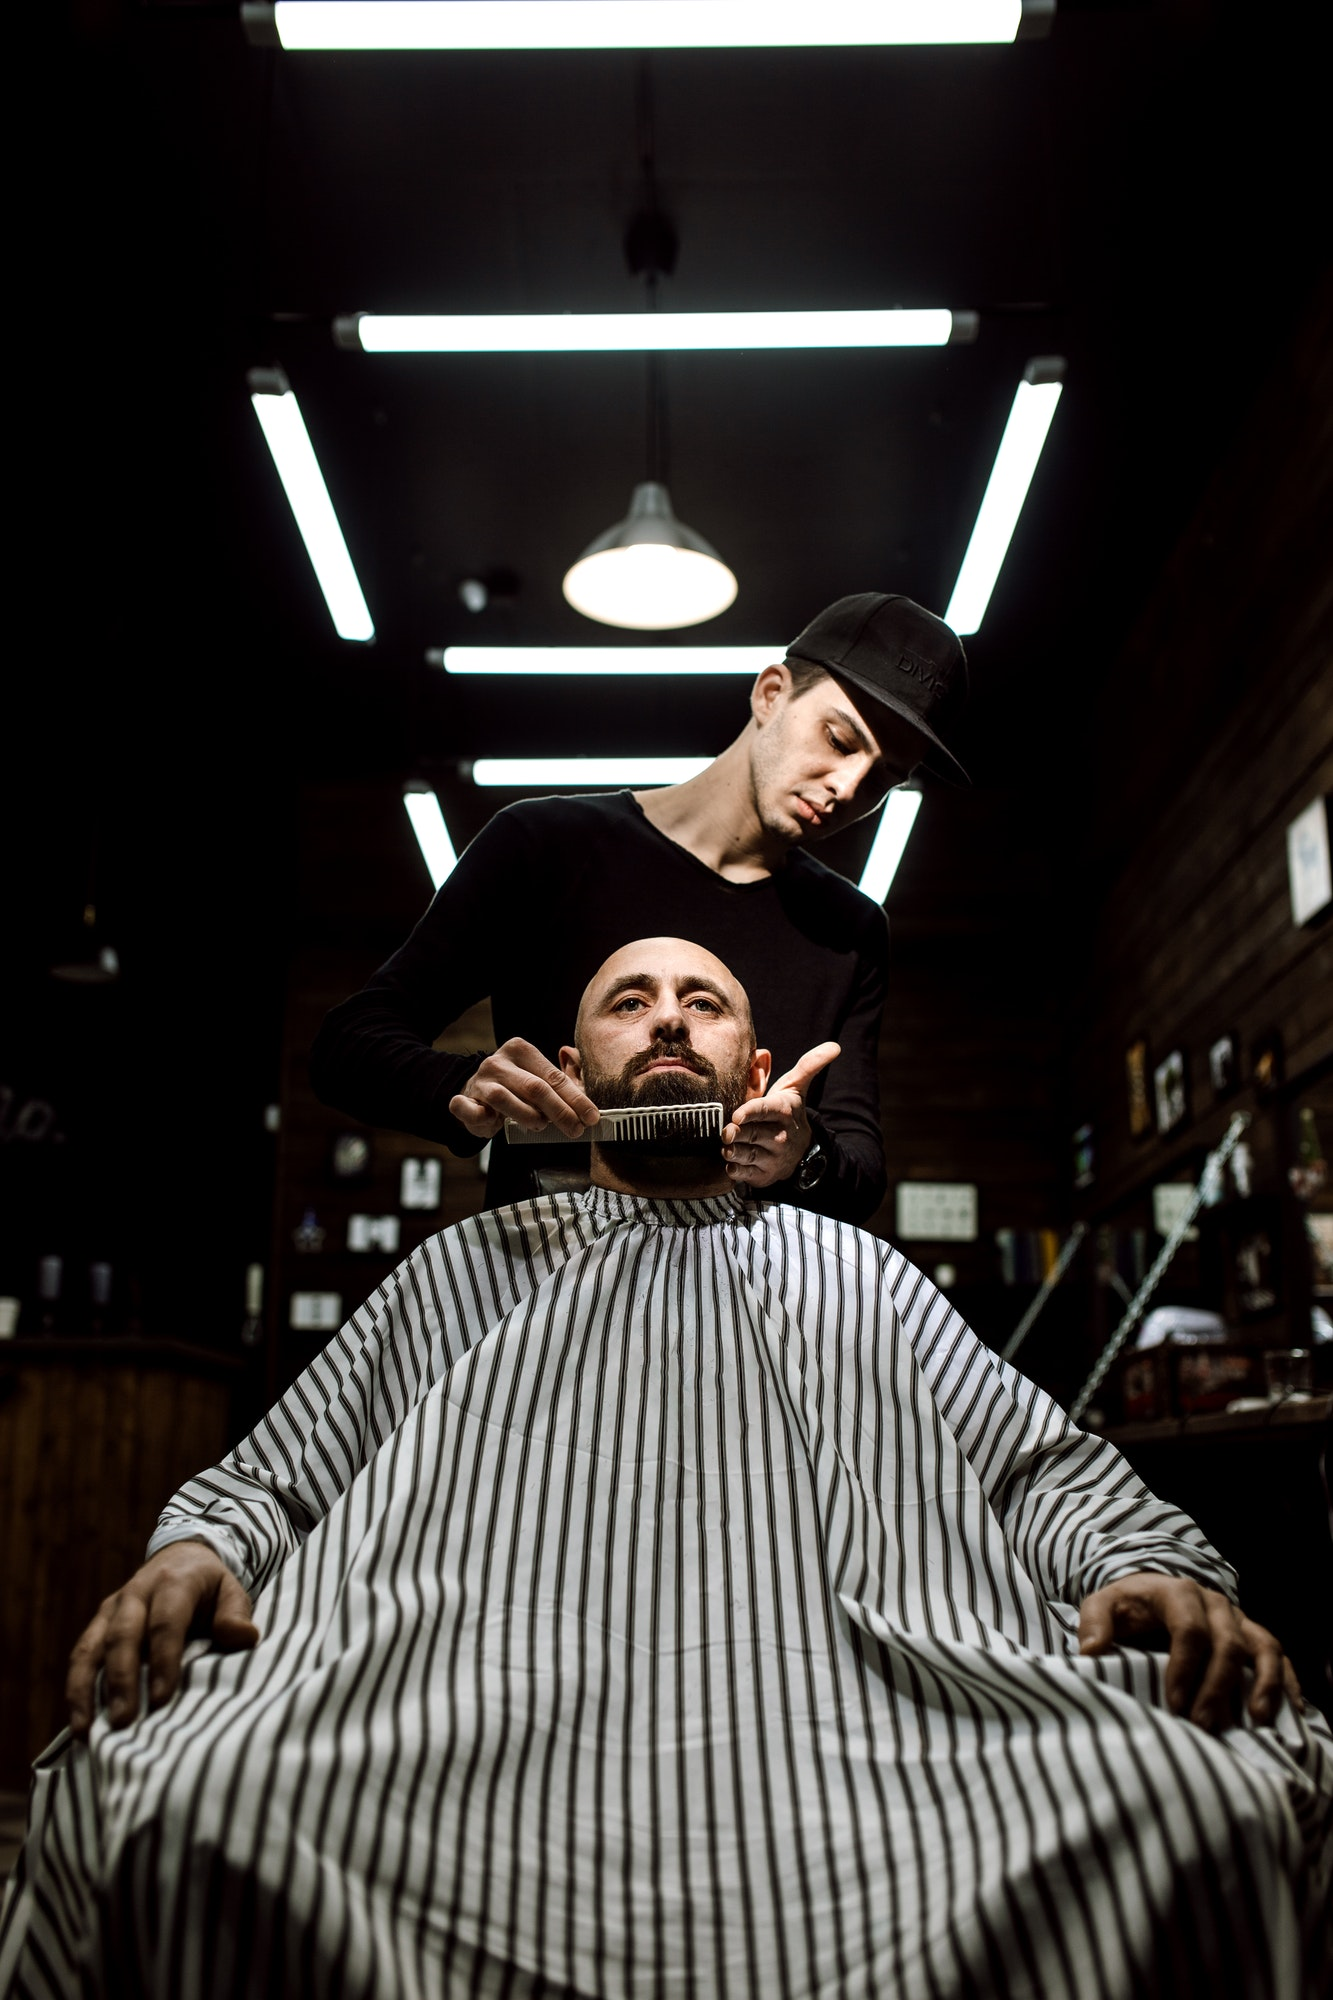 the-stylish-barbershop-the-fashion-barber-tidies-up-beard-of-brutal-man-sitting-in-the-armchair.jpg